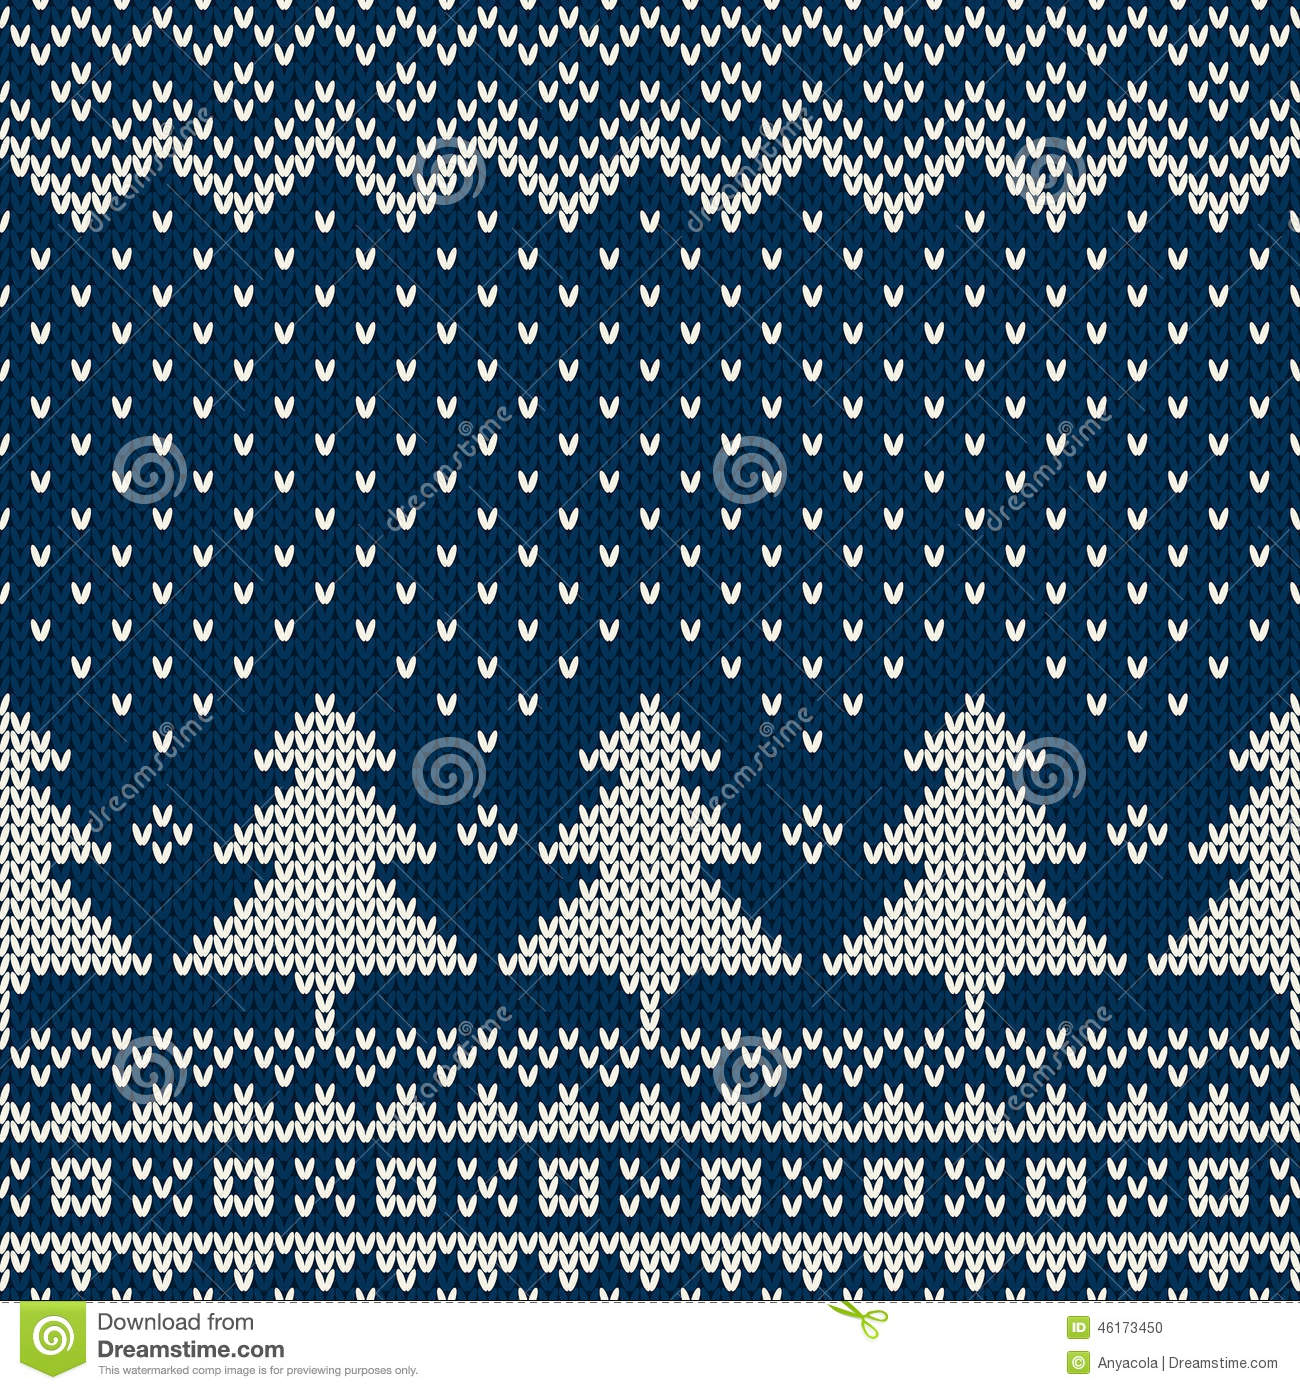 Knitting Vector Patterns : Winter holiday seamless knitting pattern with a christmas